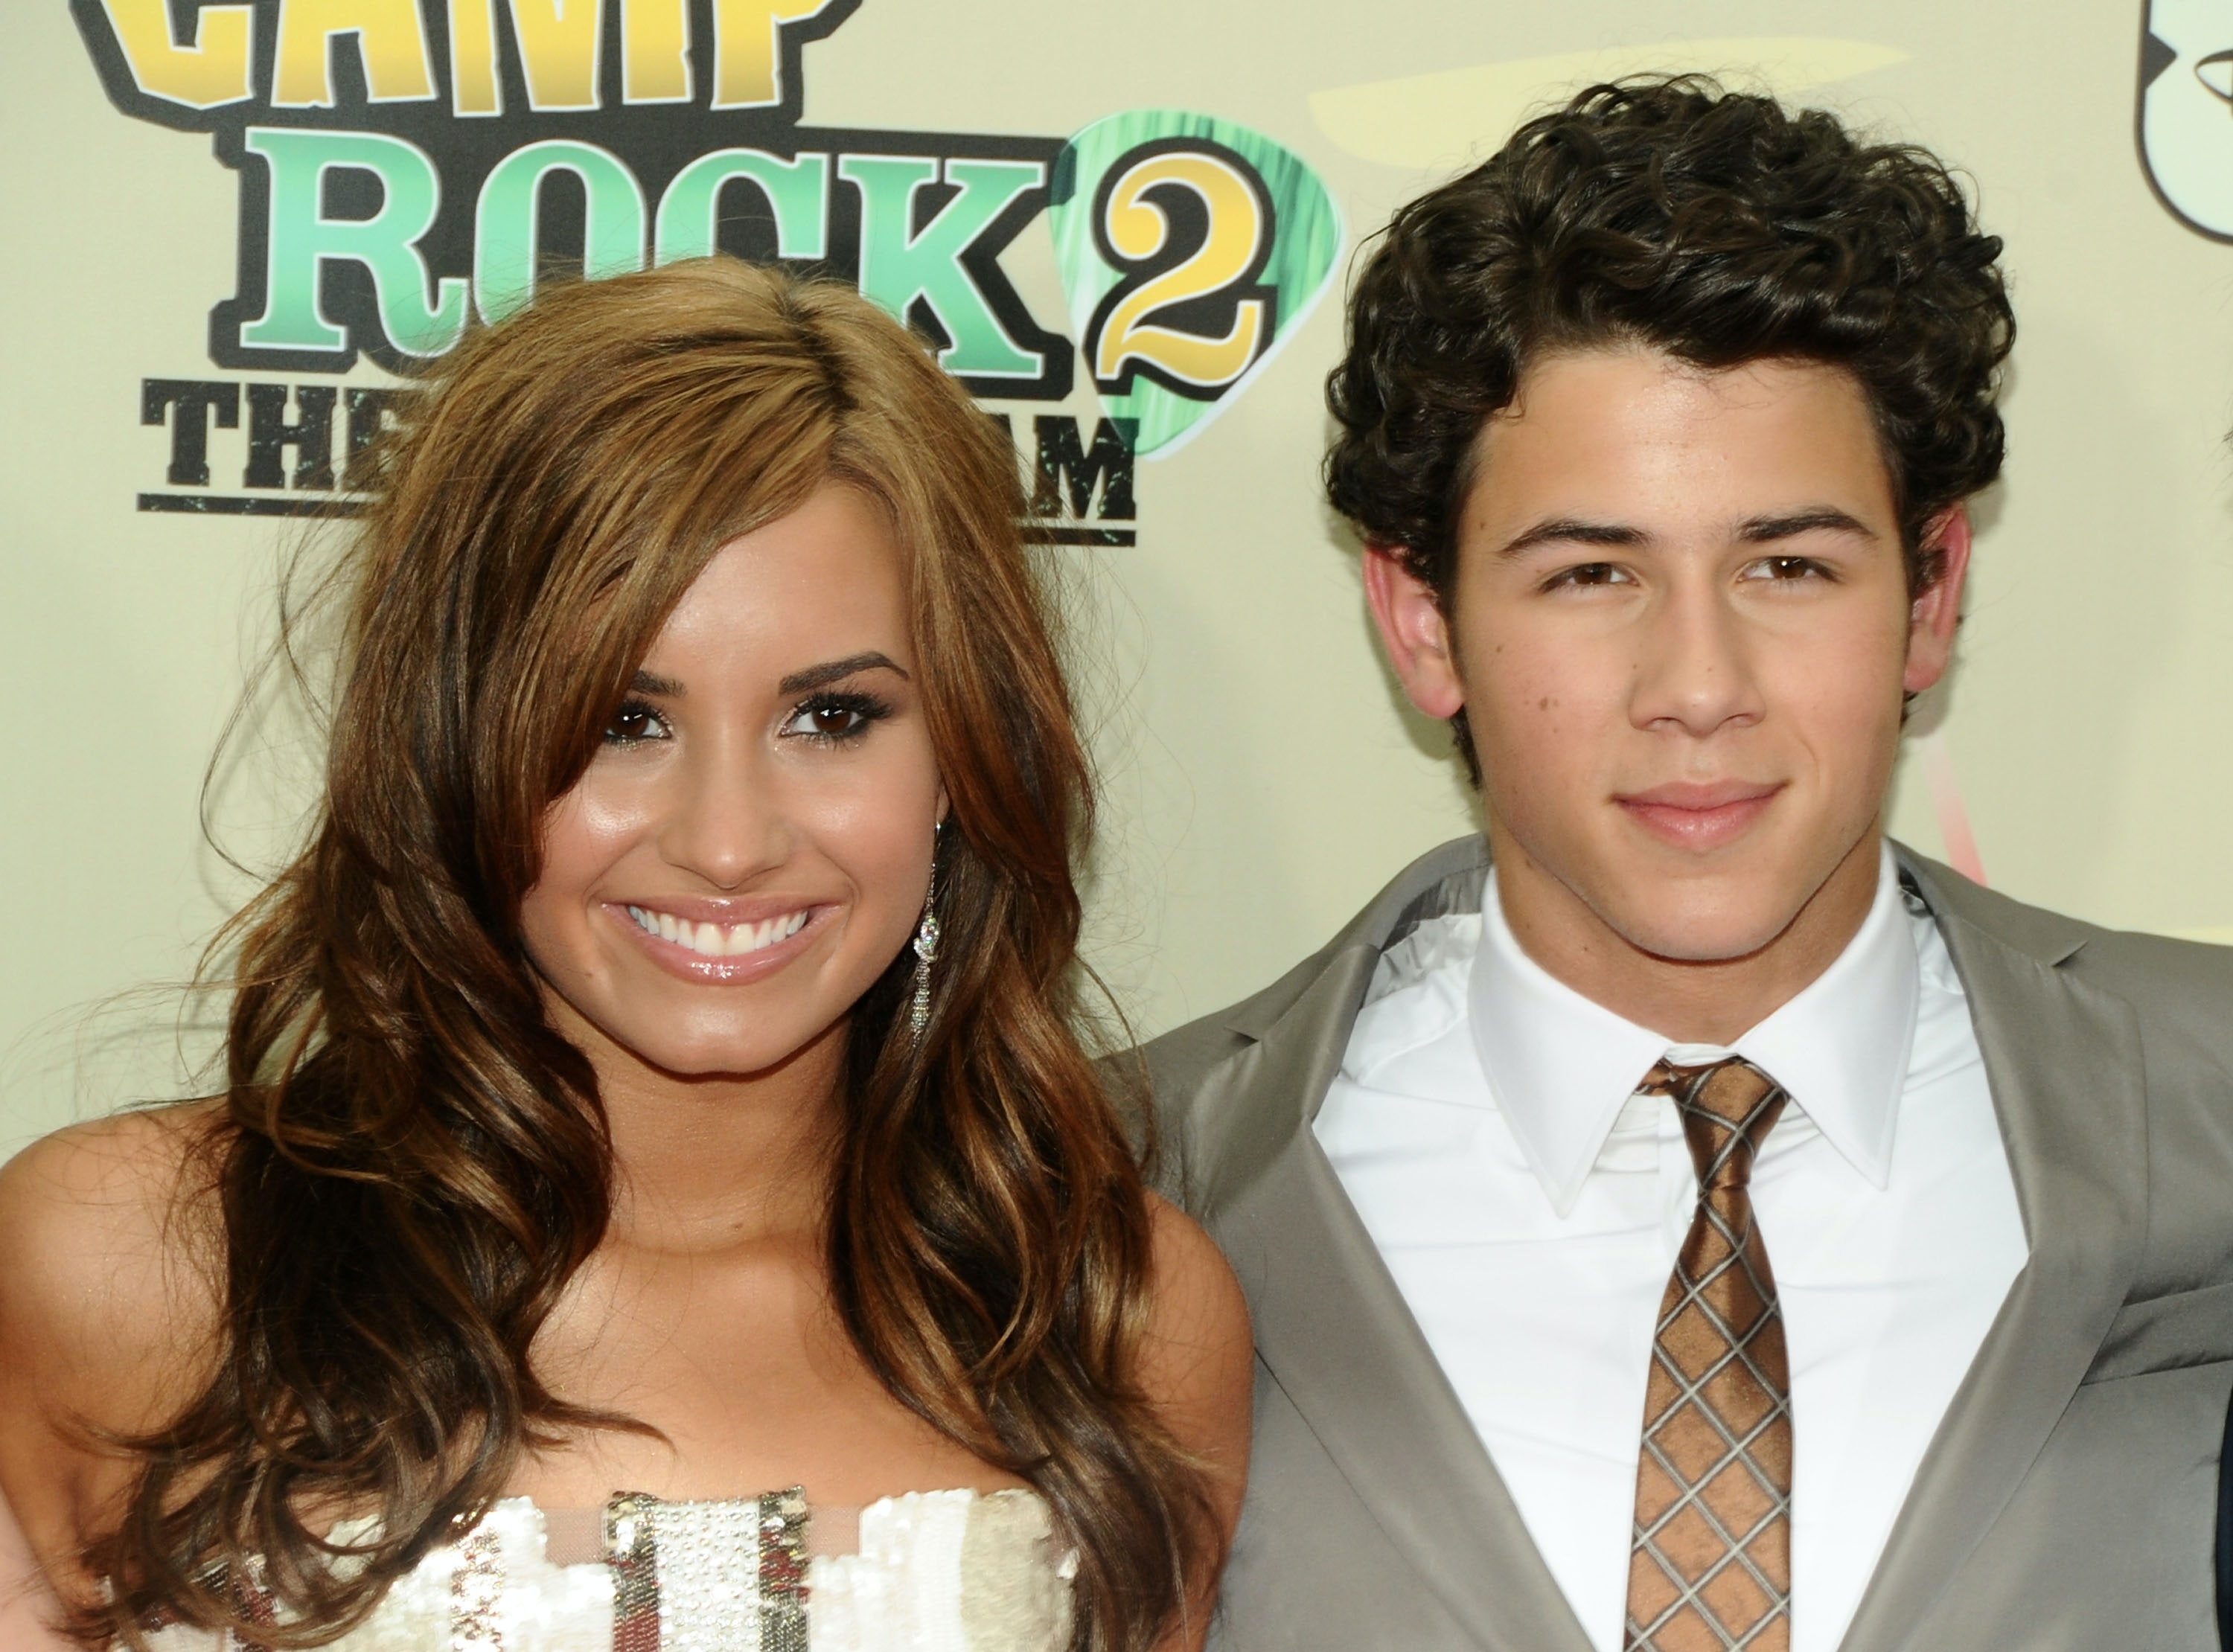 Are nick jonas and demi lovato dating, nude selfies of teen studs